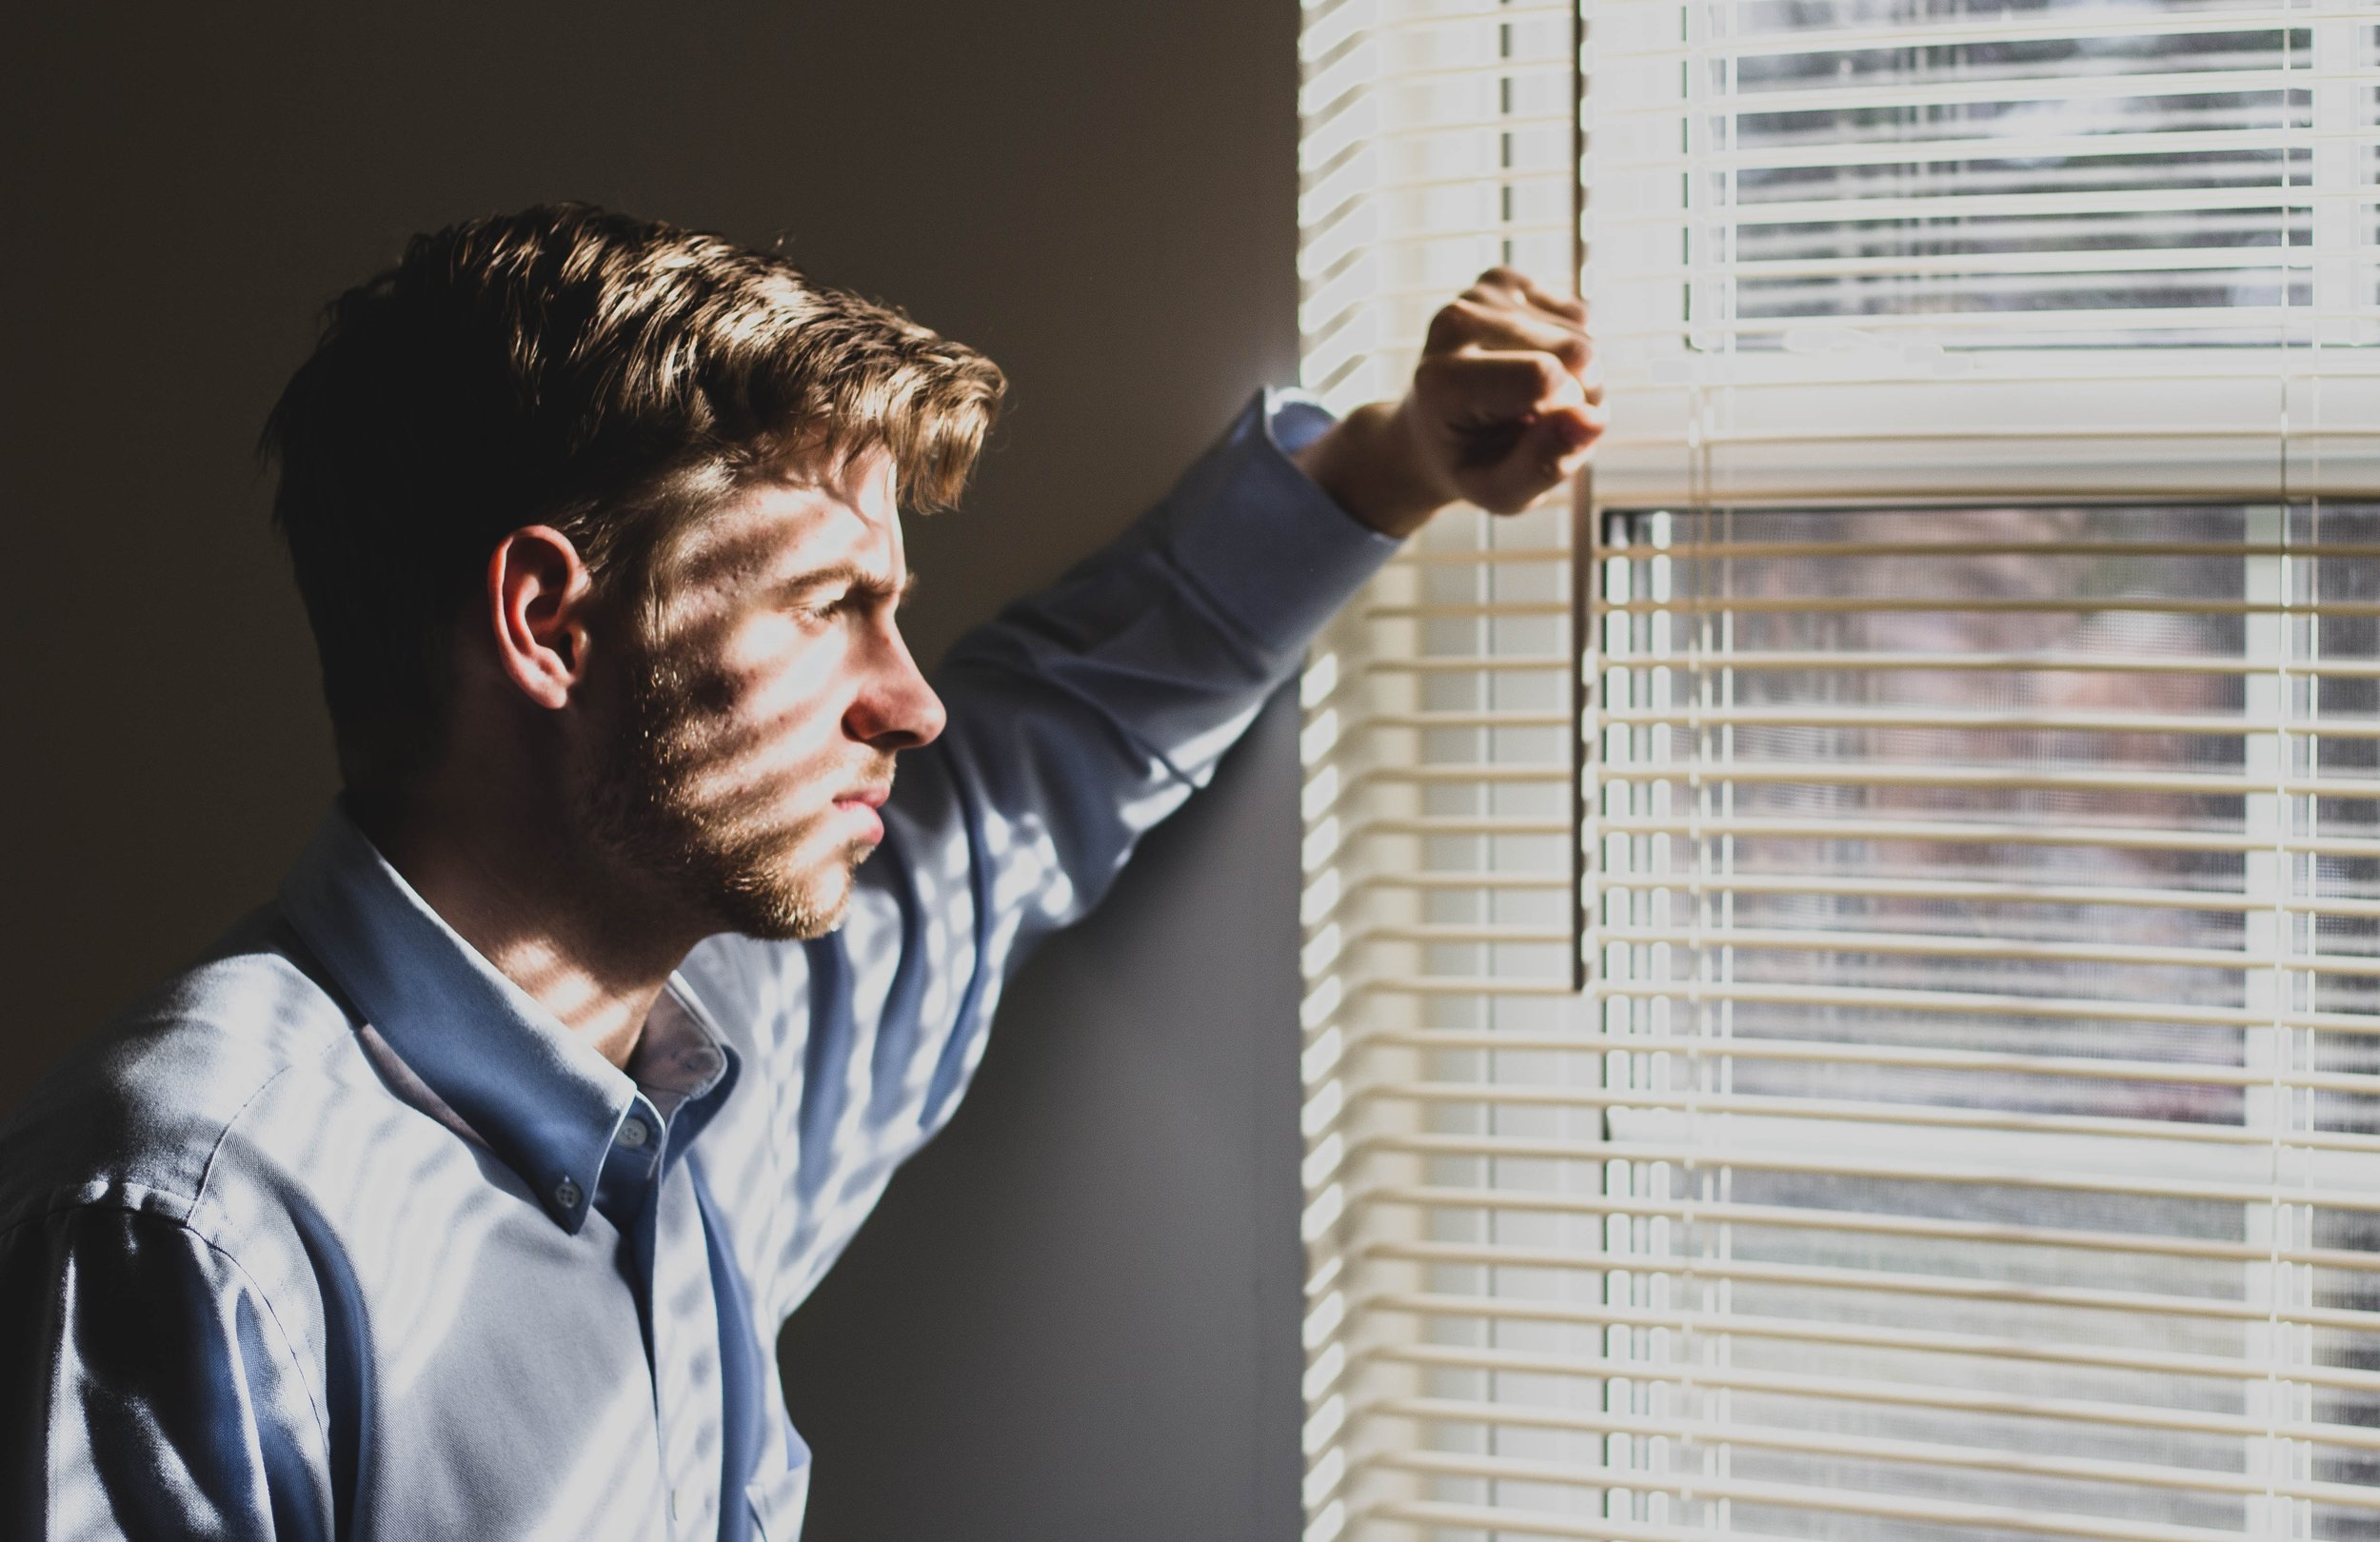 Depressed man in dark room gazes out of window.